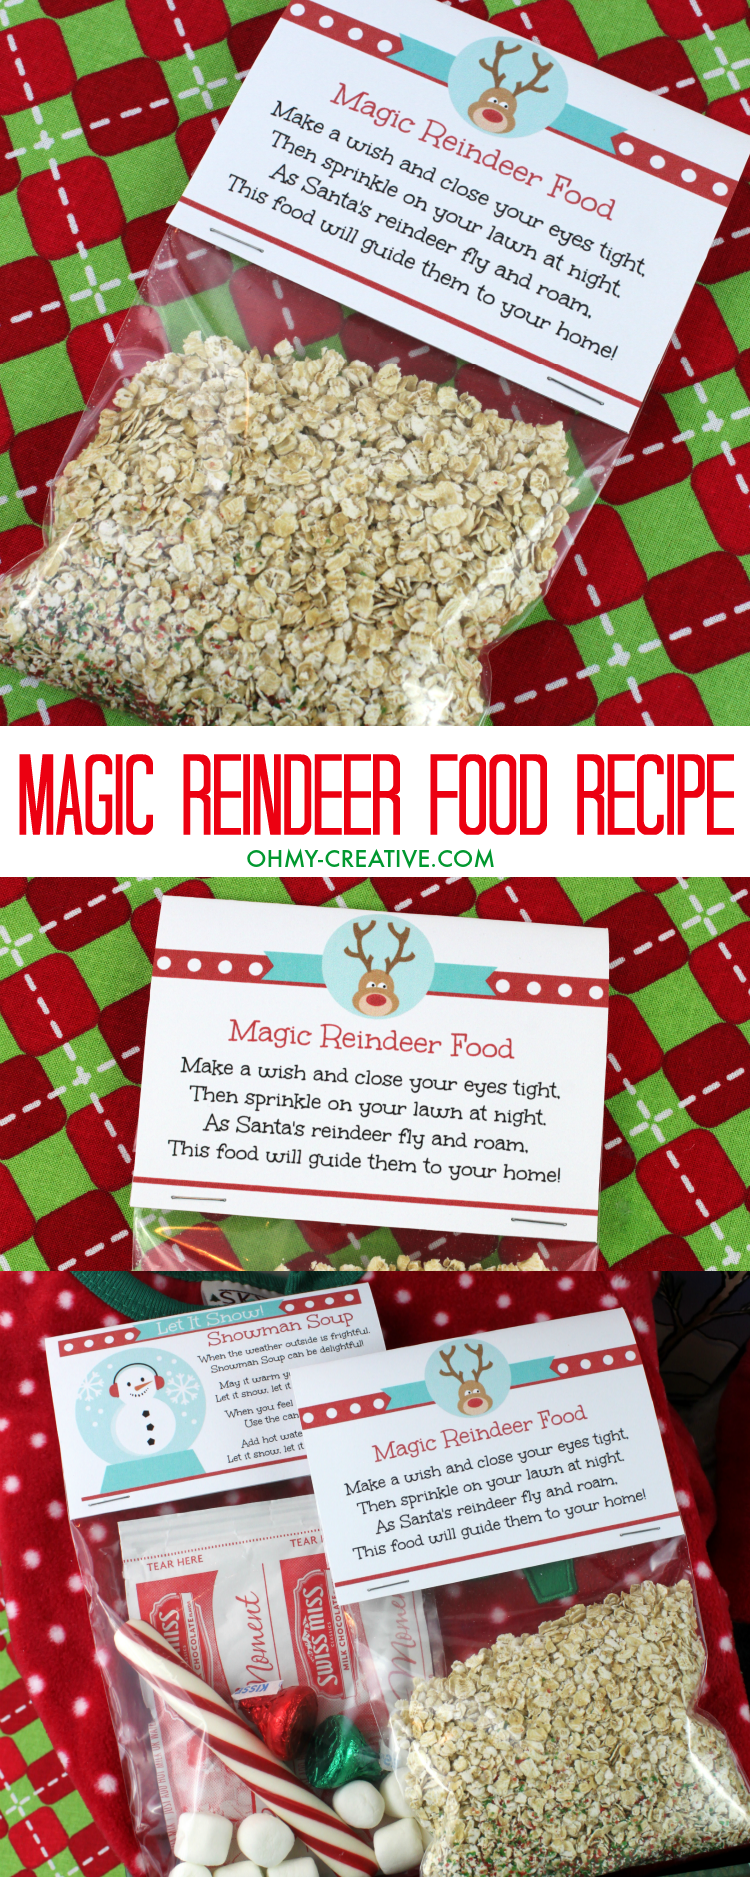 The magic reindeer food recipe is so easy to follow. Printable labels make a cute, festive addition to your Christmas Eve box or stocking stuffer.